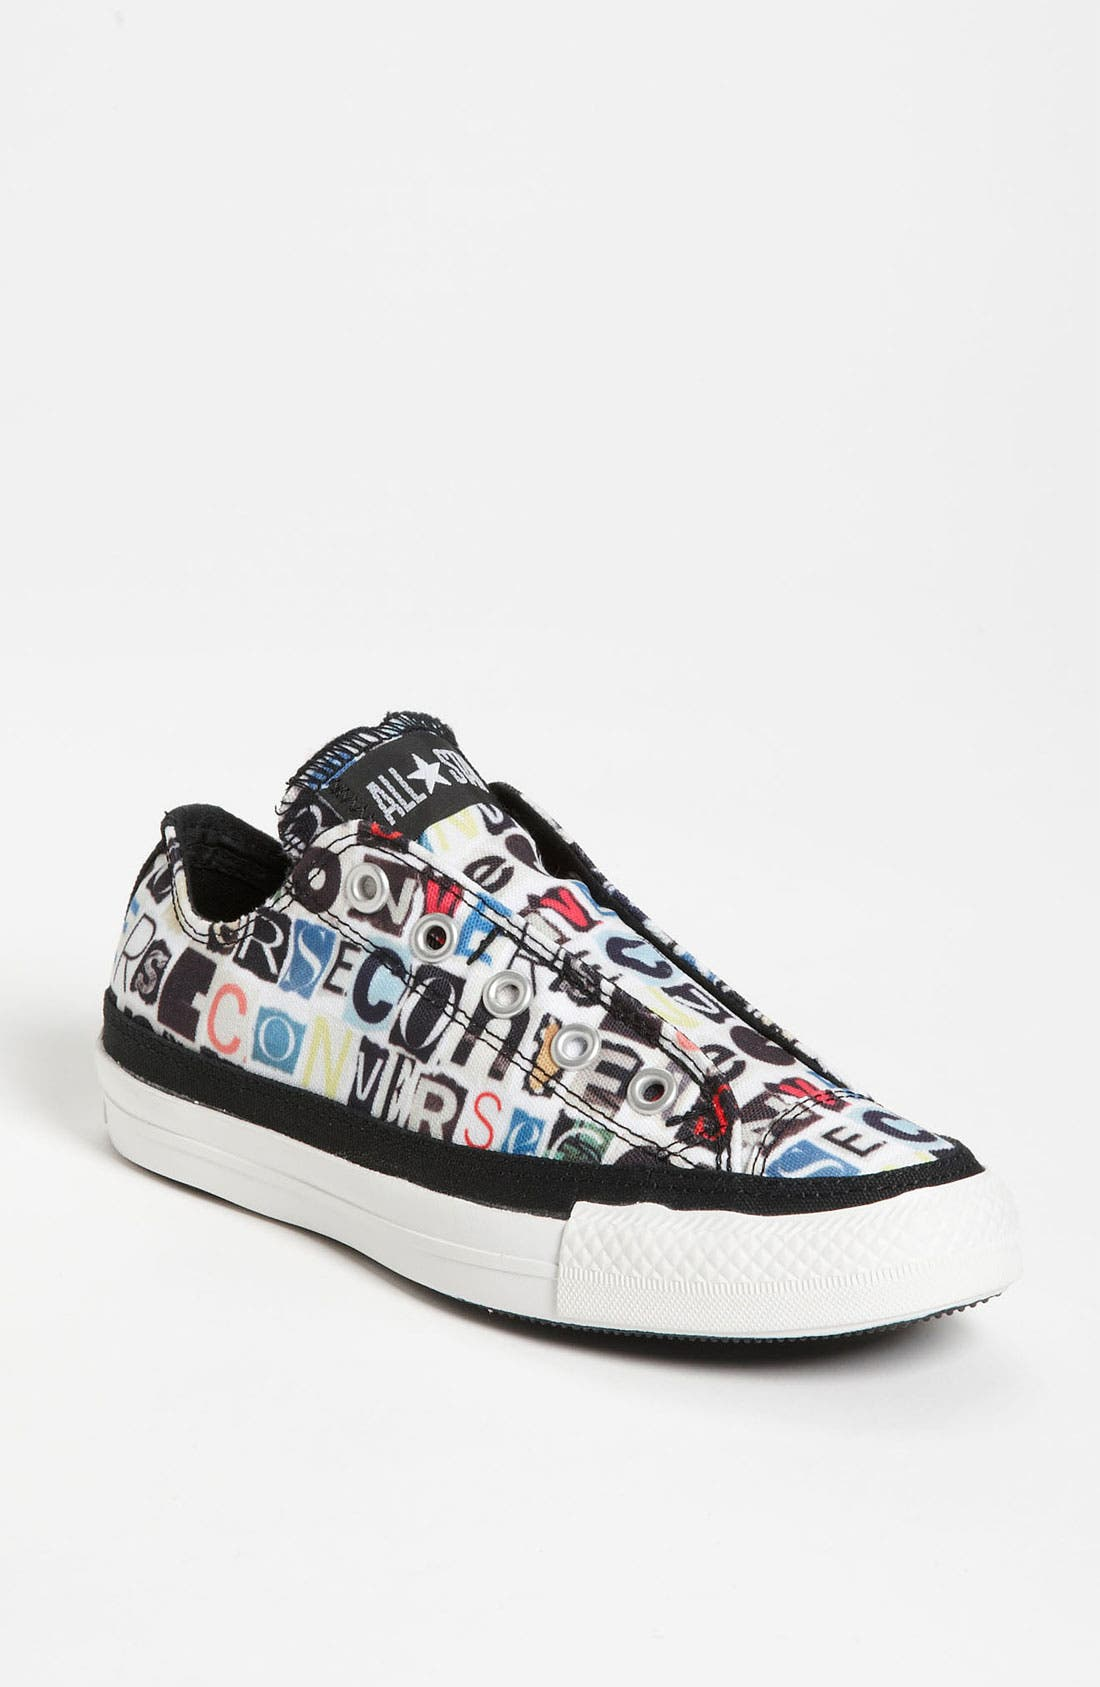 Main Image - Converse Chuck Taylor® All Star® 'Ransom Note' Slip-On Sneaker (Women)